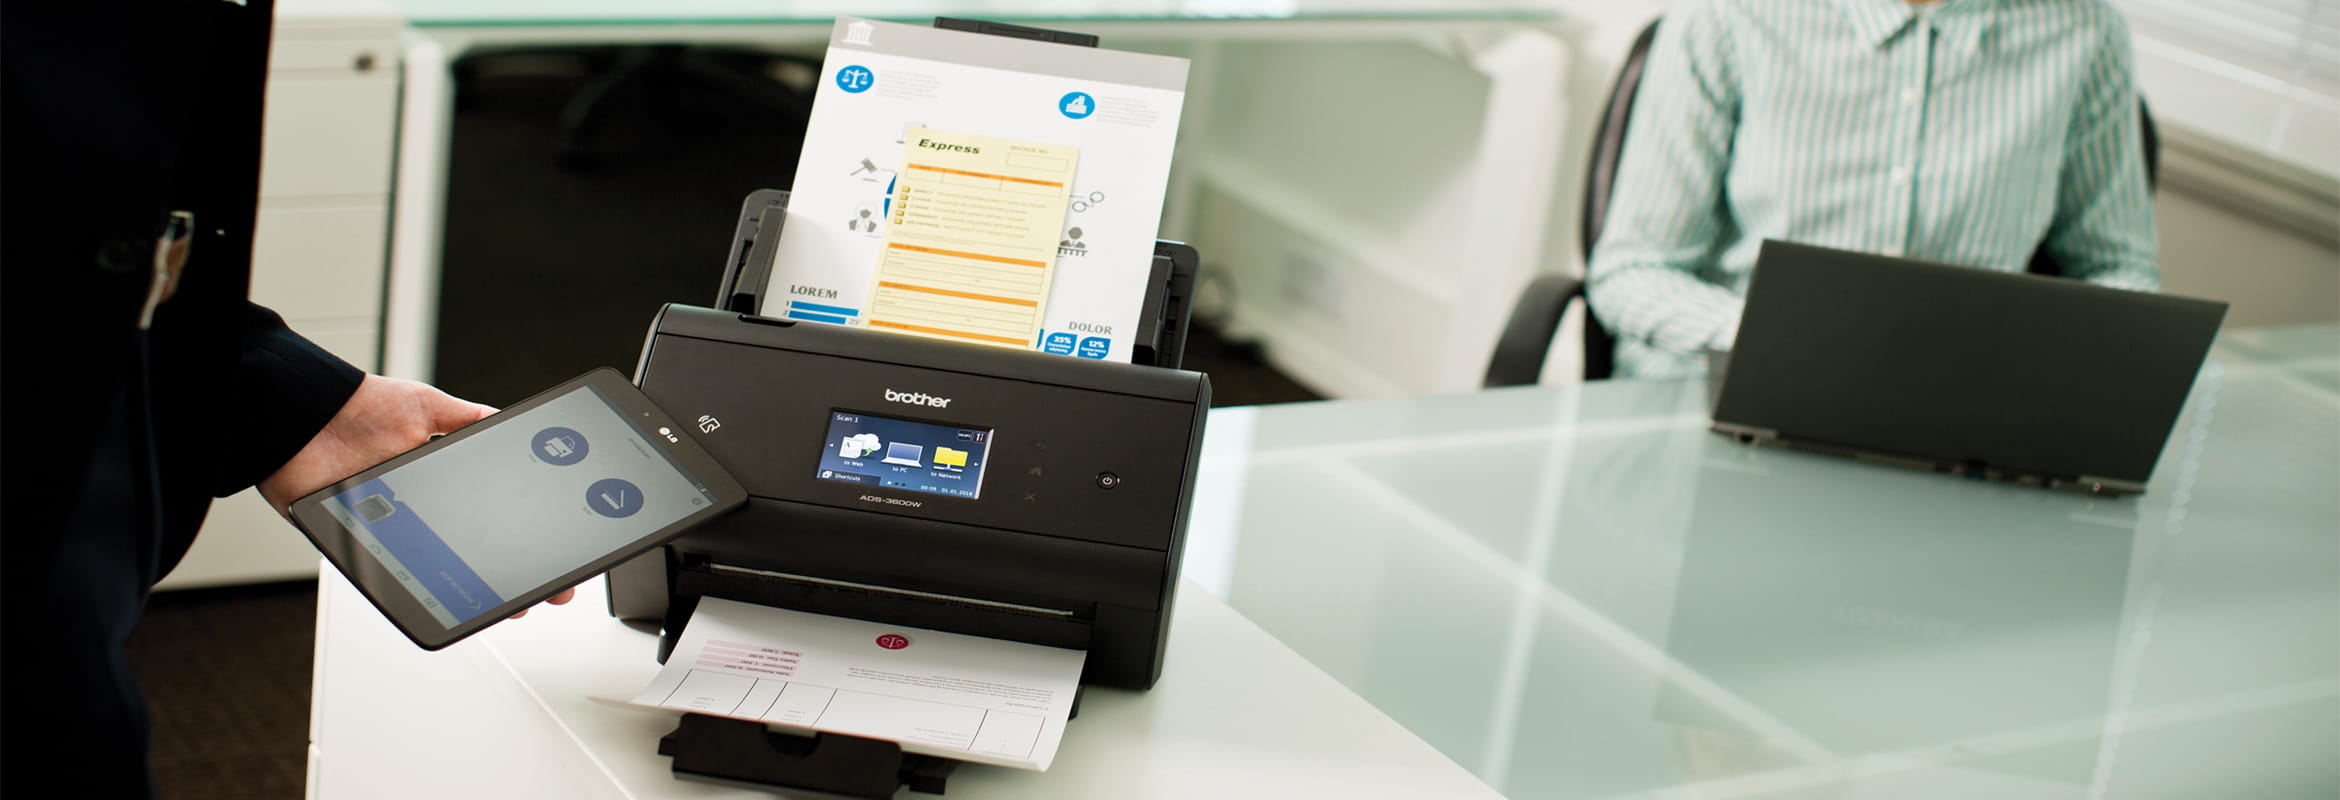 Scanning wireless from iPad to a Brother Desktop scanner ADS-3600W